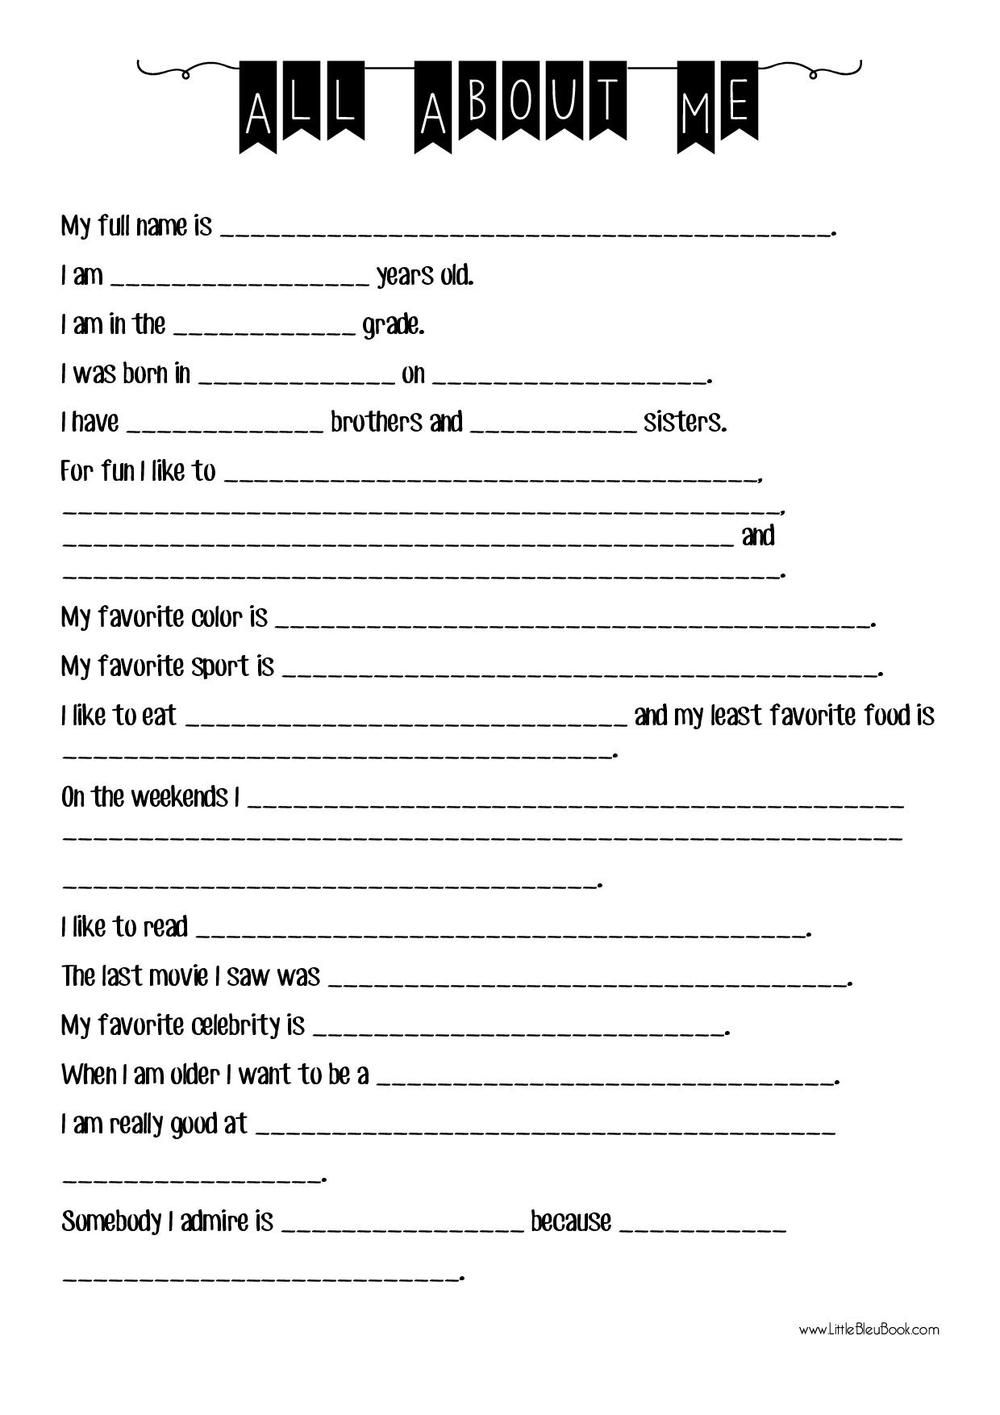 all about me esl worksheet little bleu book esl pinterest worksheets starting school. Black Bedroom Furniture Sets. Home Design Ideas